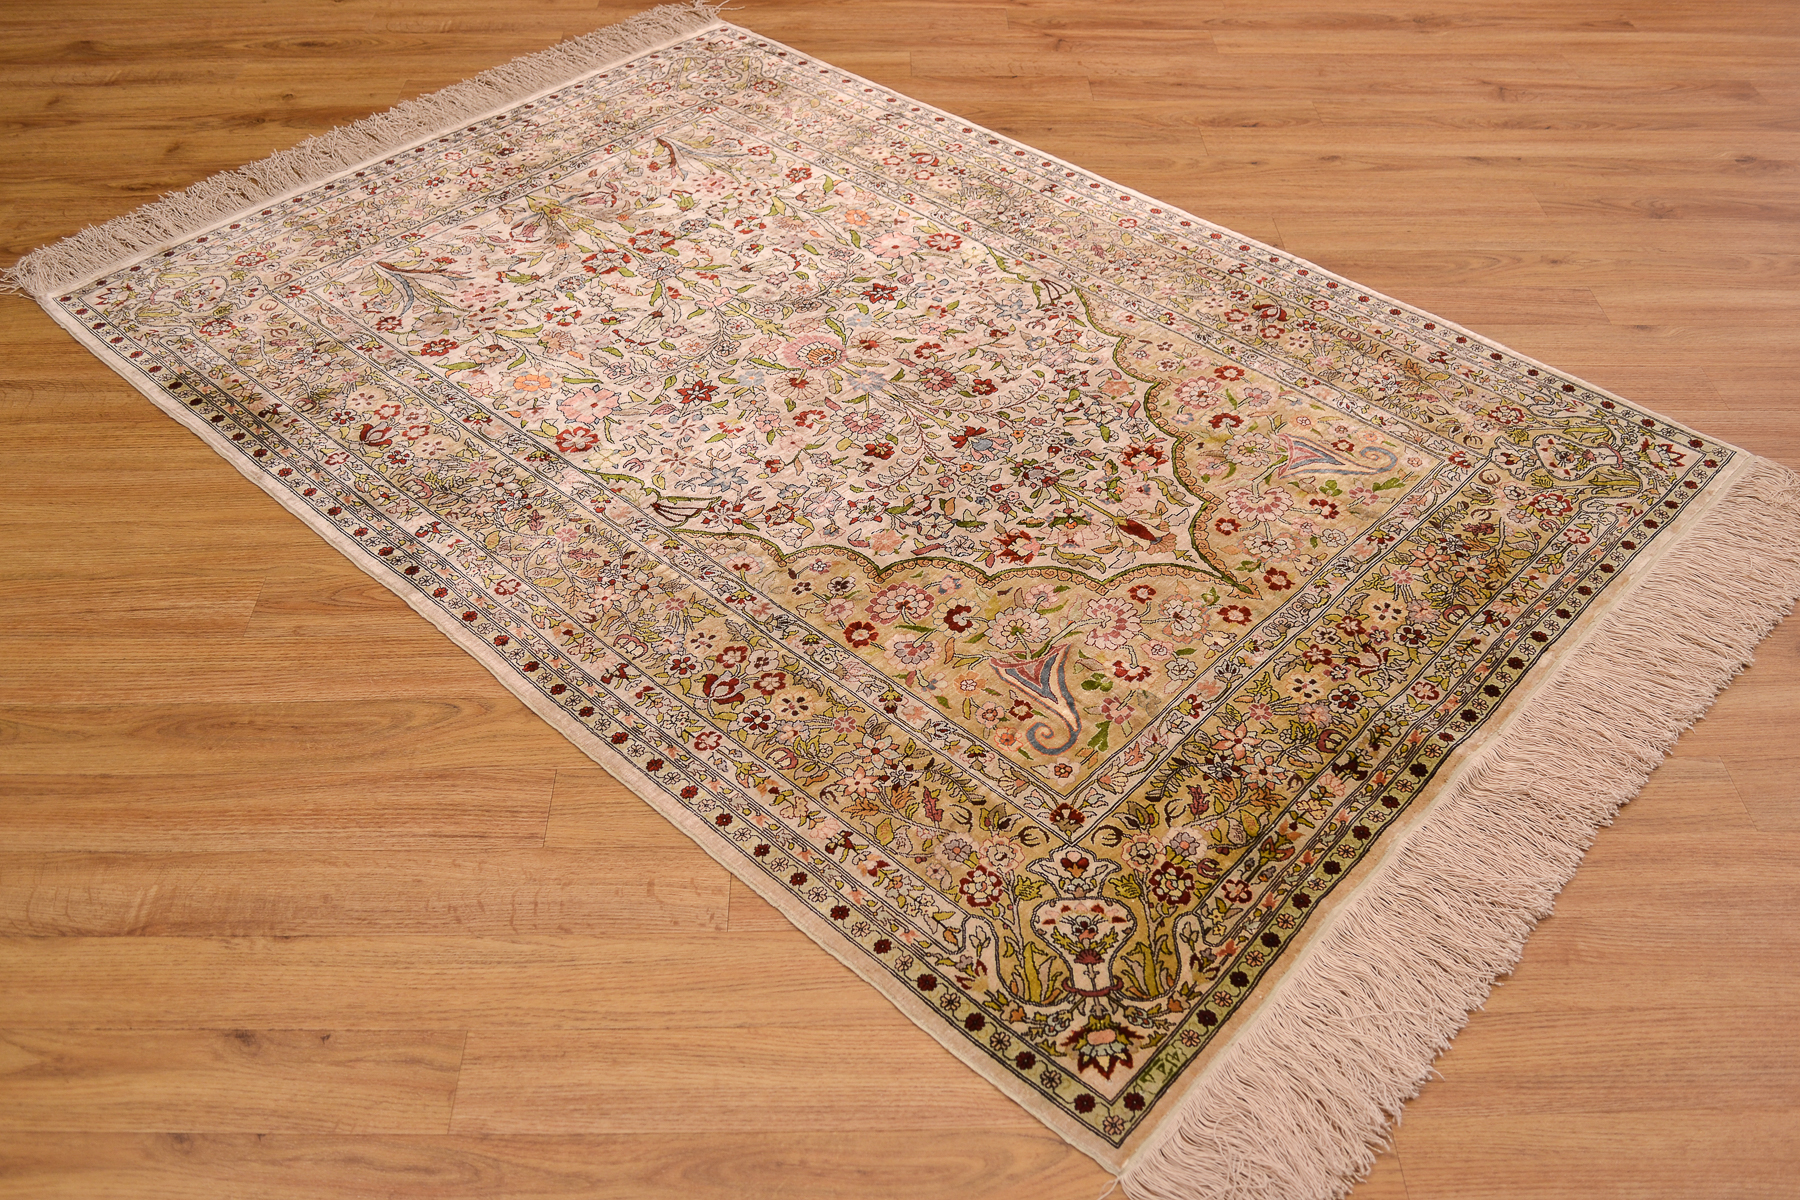 Fine Turkish Silk Hereke Rug 1 46x1 01m The Oriental Rug